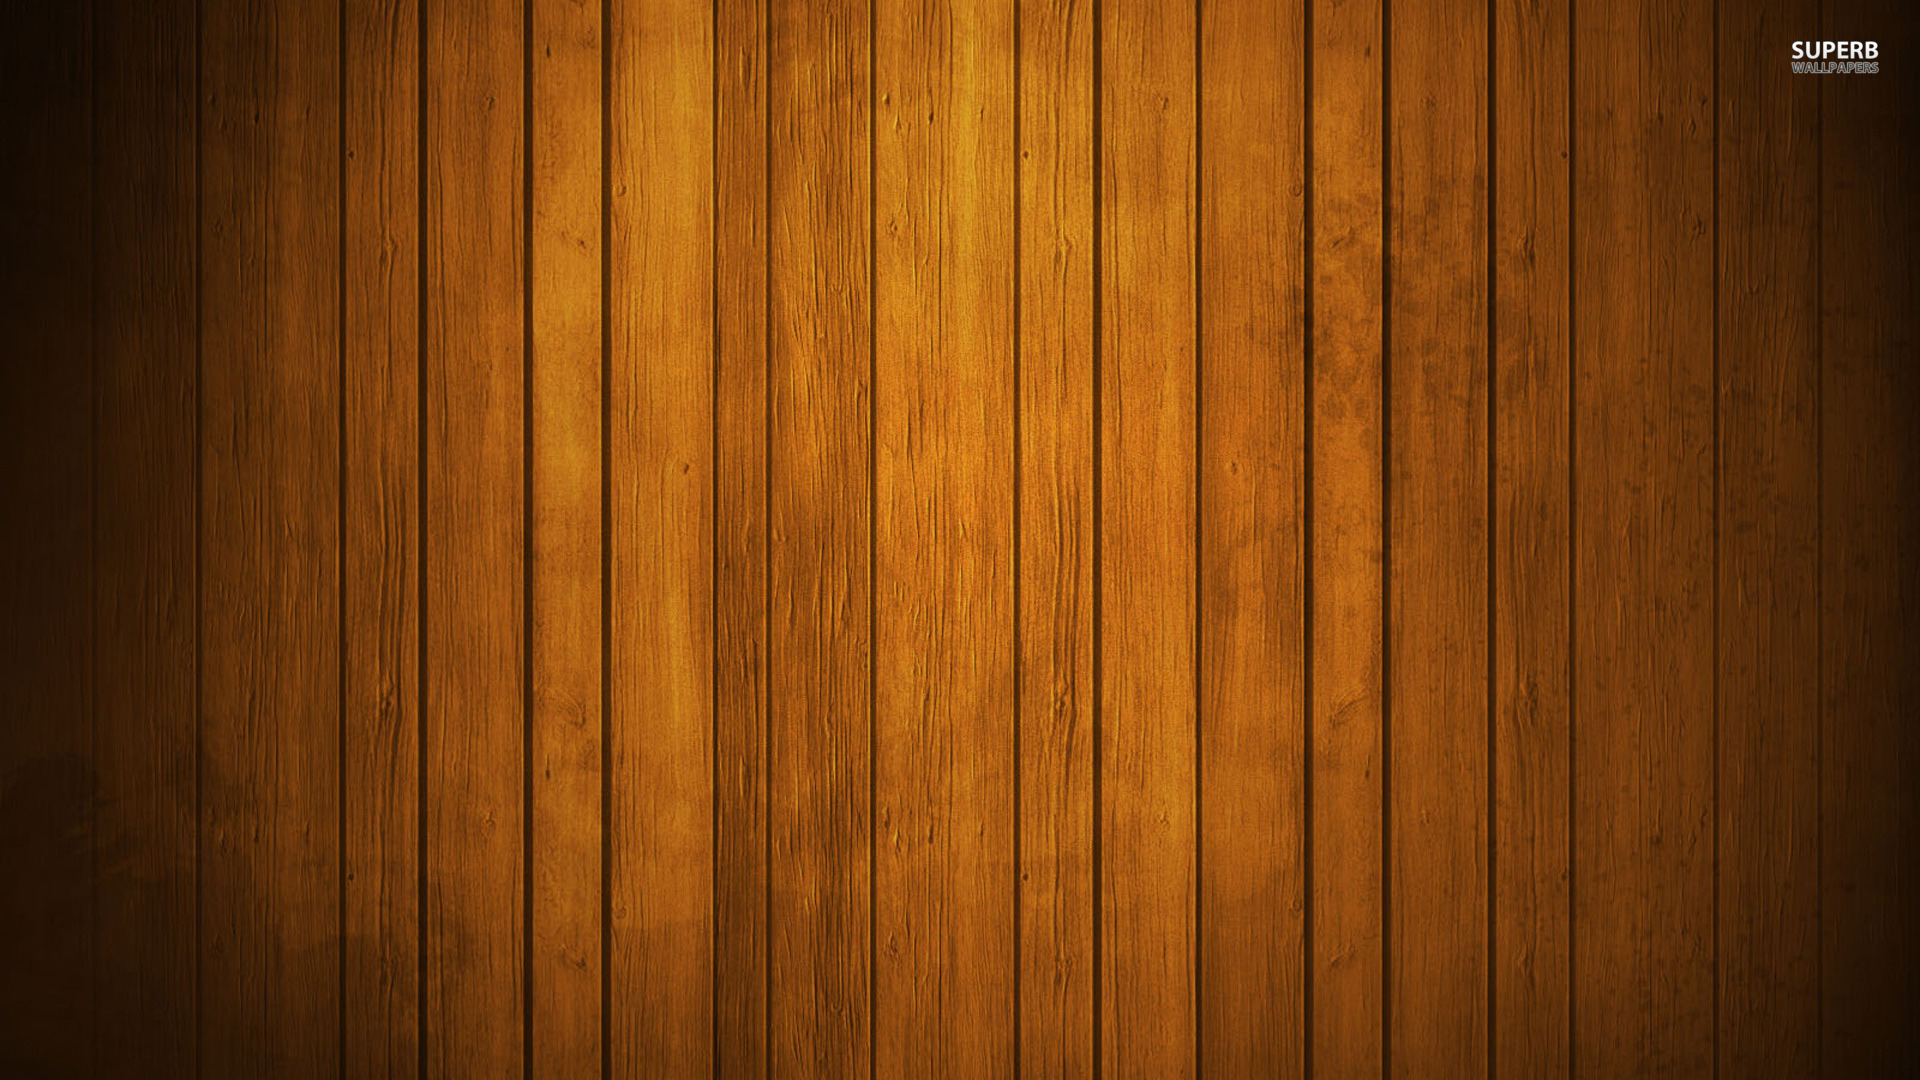 Wood-Floor-Pattern-Background-Paper-Backgrounds-Download-High-HD-wallpaper-wpc90010761